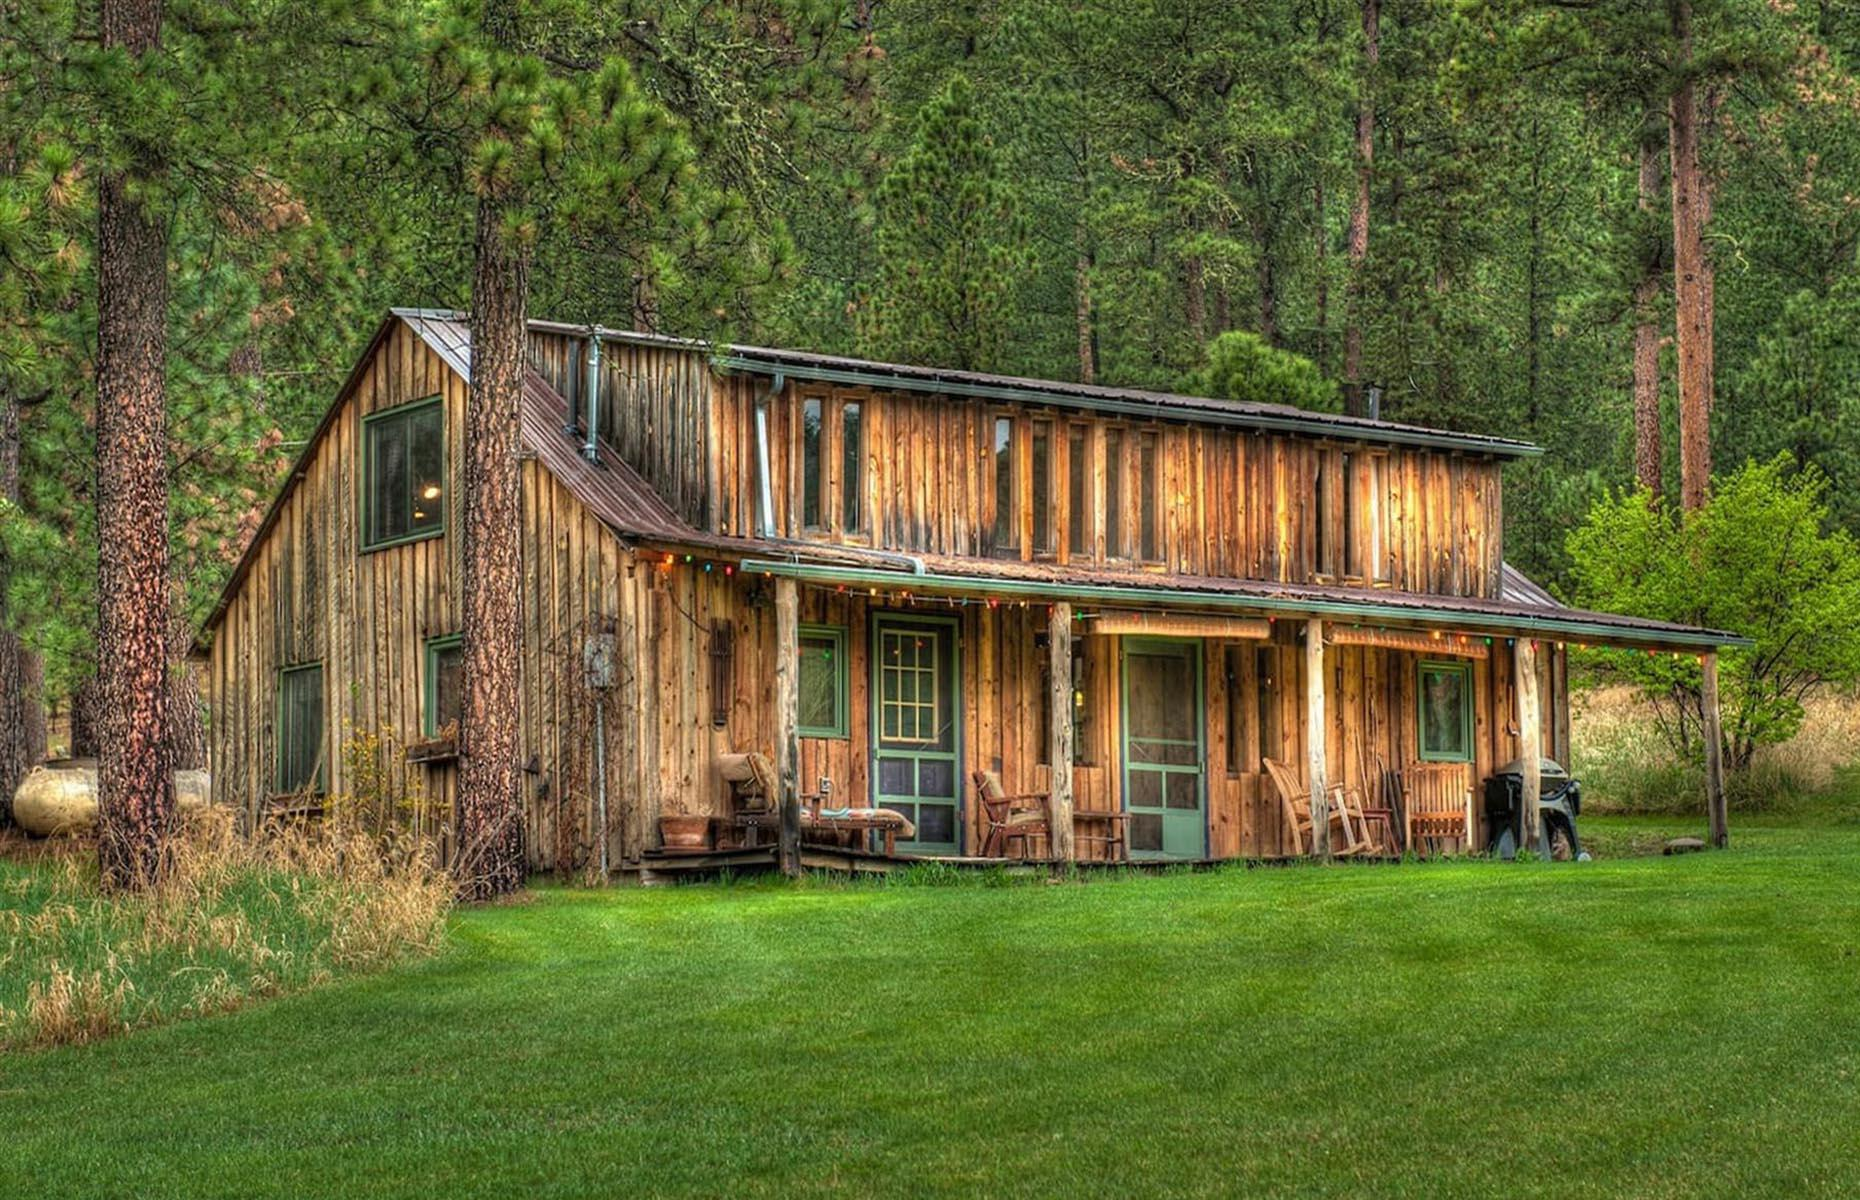 Slide 43 of 52: Enjoy true mountain living in total comfort at this Deadwood cabin located near Nemo, a tiny mountain town set in the picturesque valley of Boxelder Creek. Convenient for visiting South Dakota's most famous attractions, including Mount Rushmore, the brilliantly redesigned 1910s cabin has two bedrooms, a lofted cathedral ceiling and a large fireplace. See more of the world's most jaw-dropping ceilings here.